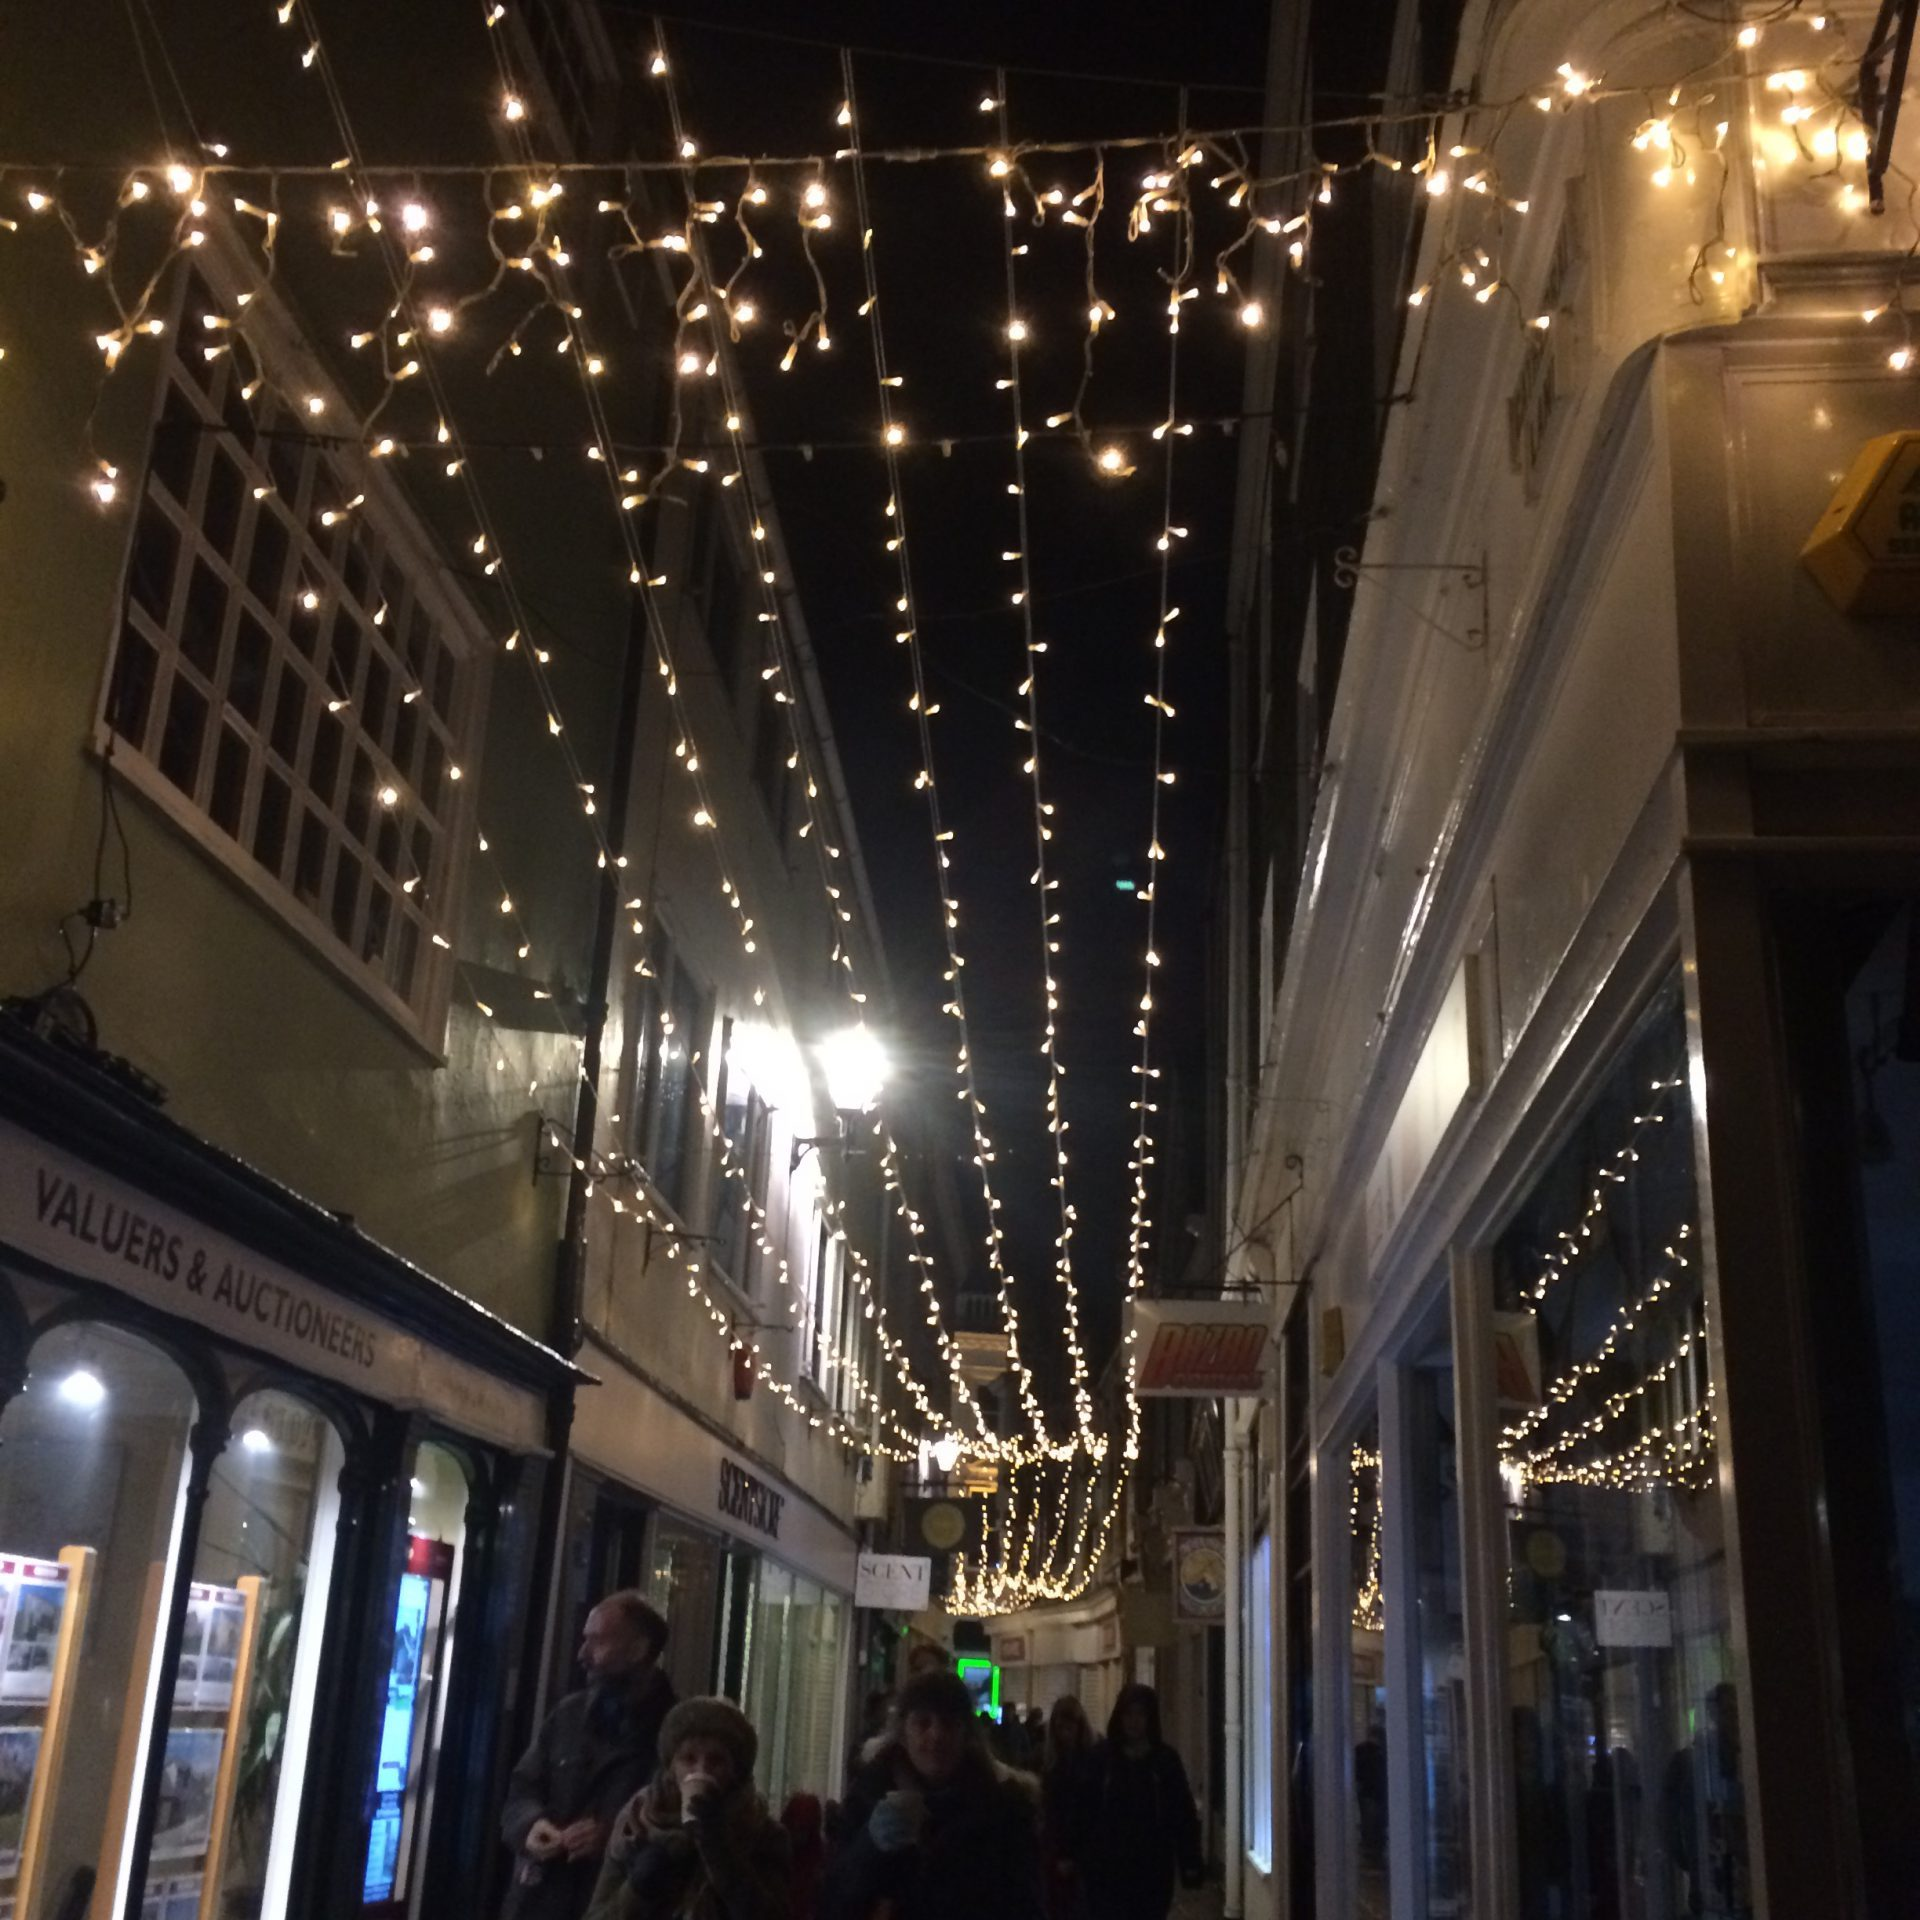 Light garlands in the town centre